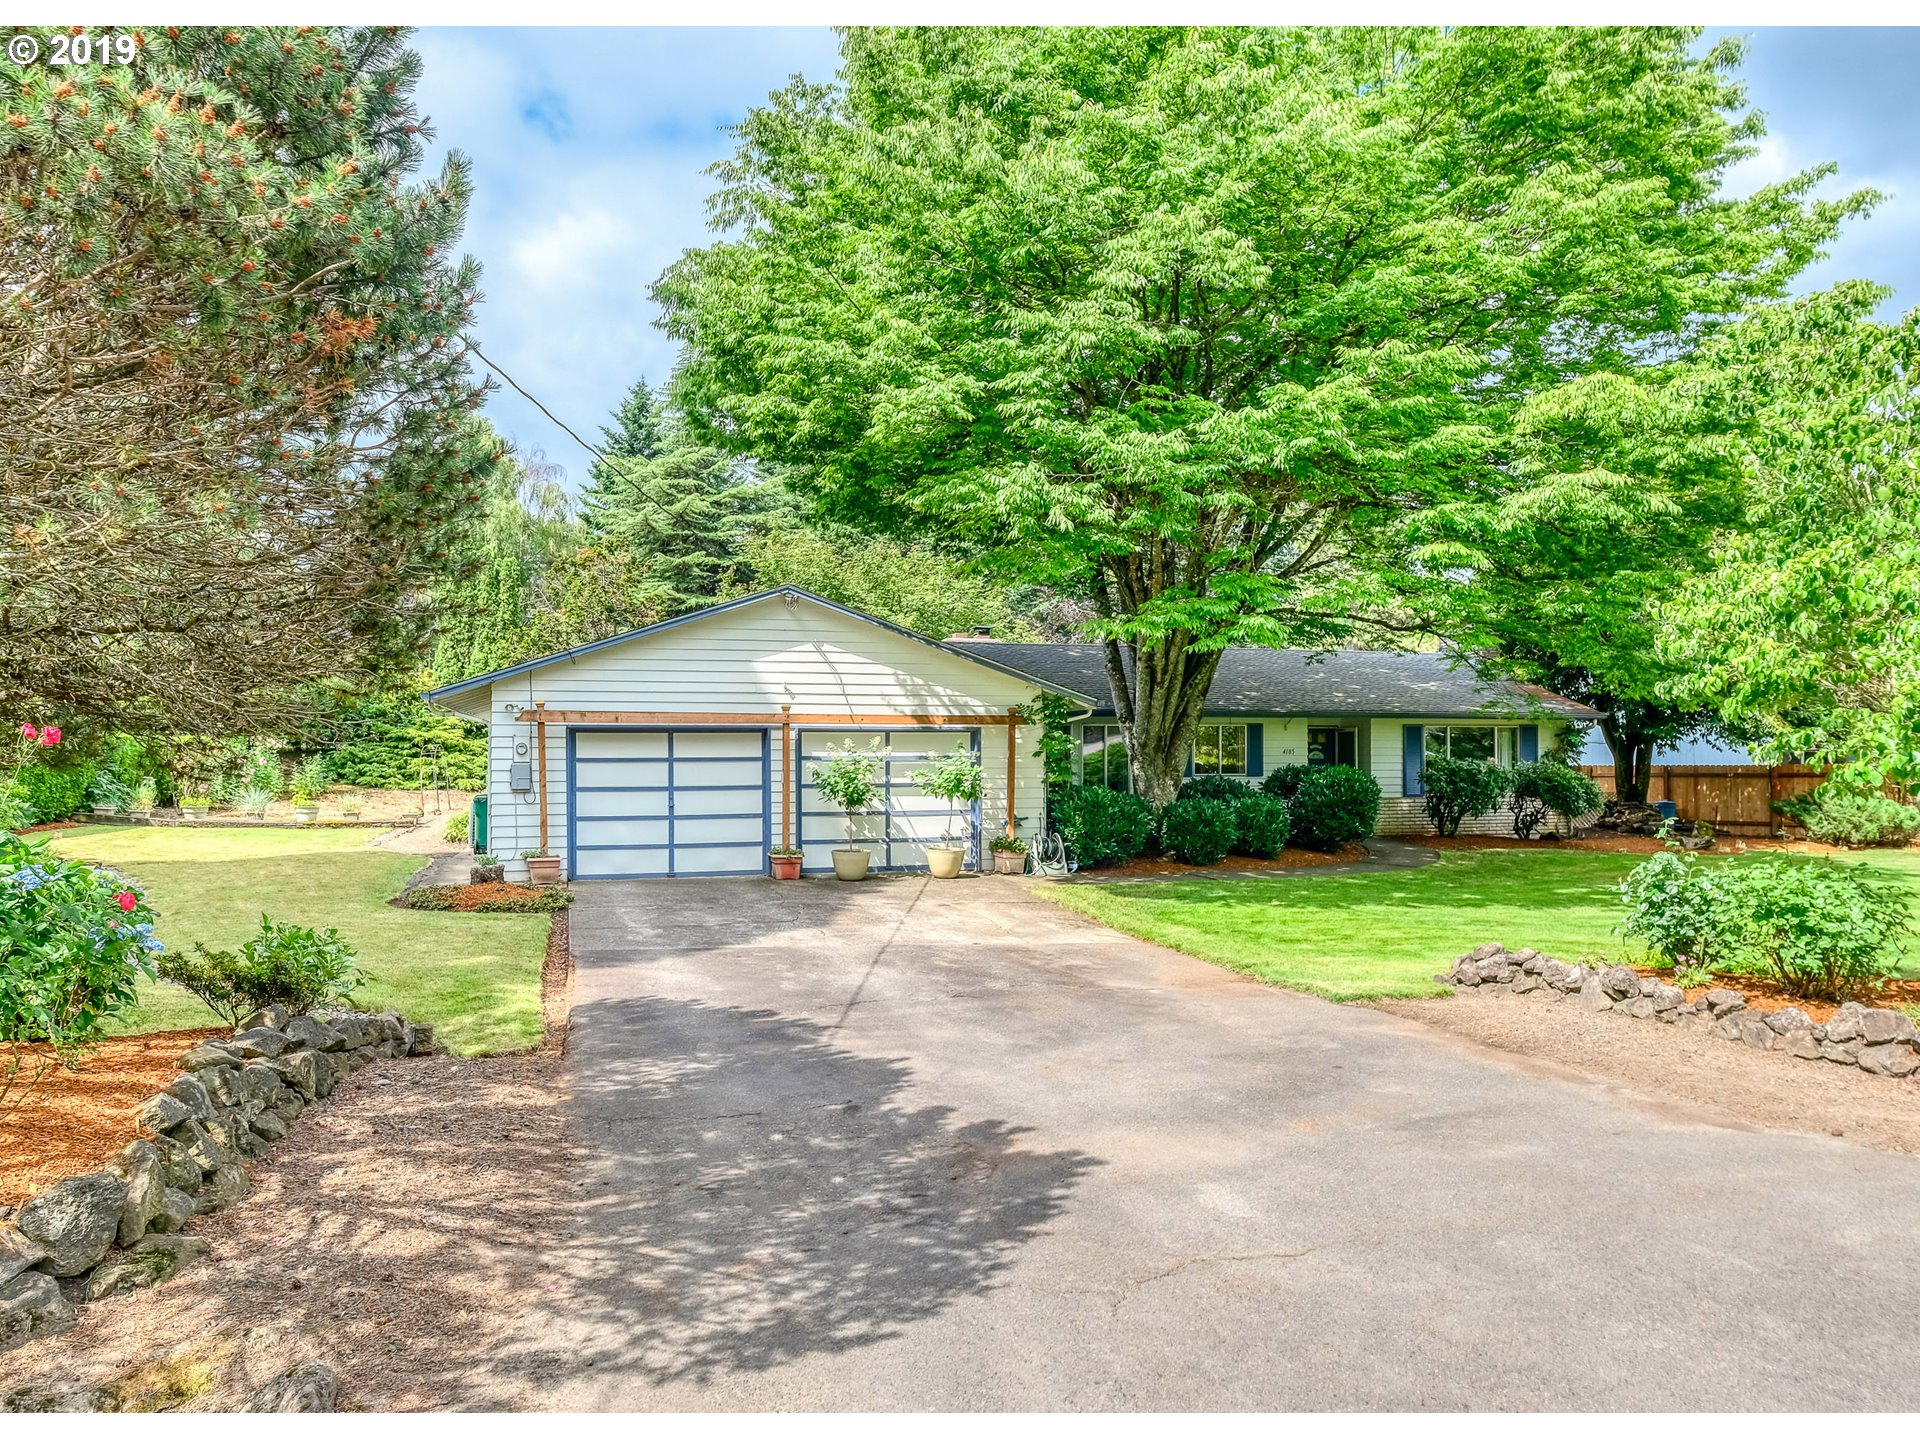 4185 SW 83rd AVE, Portland OR 97225